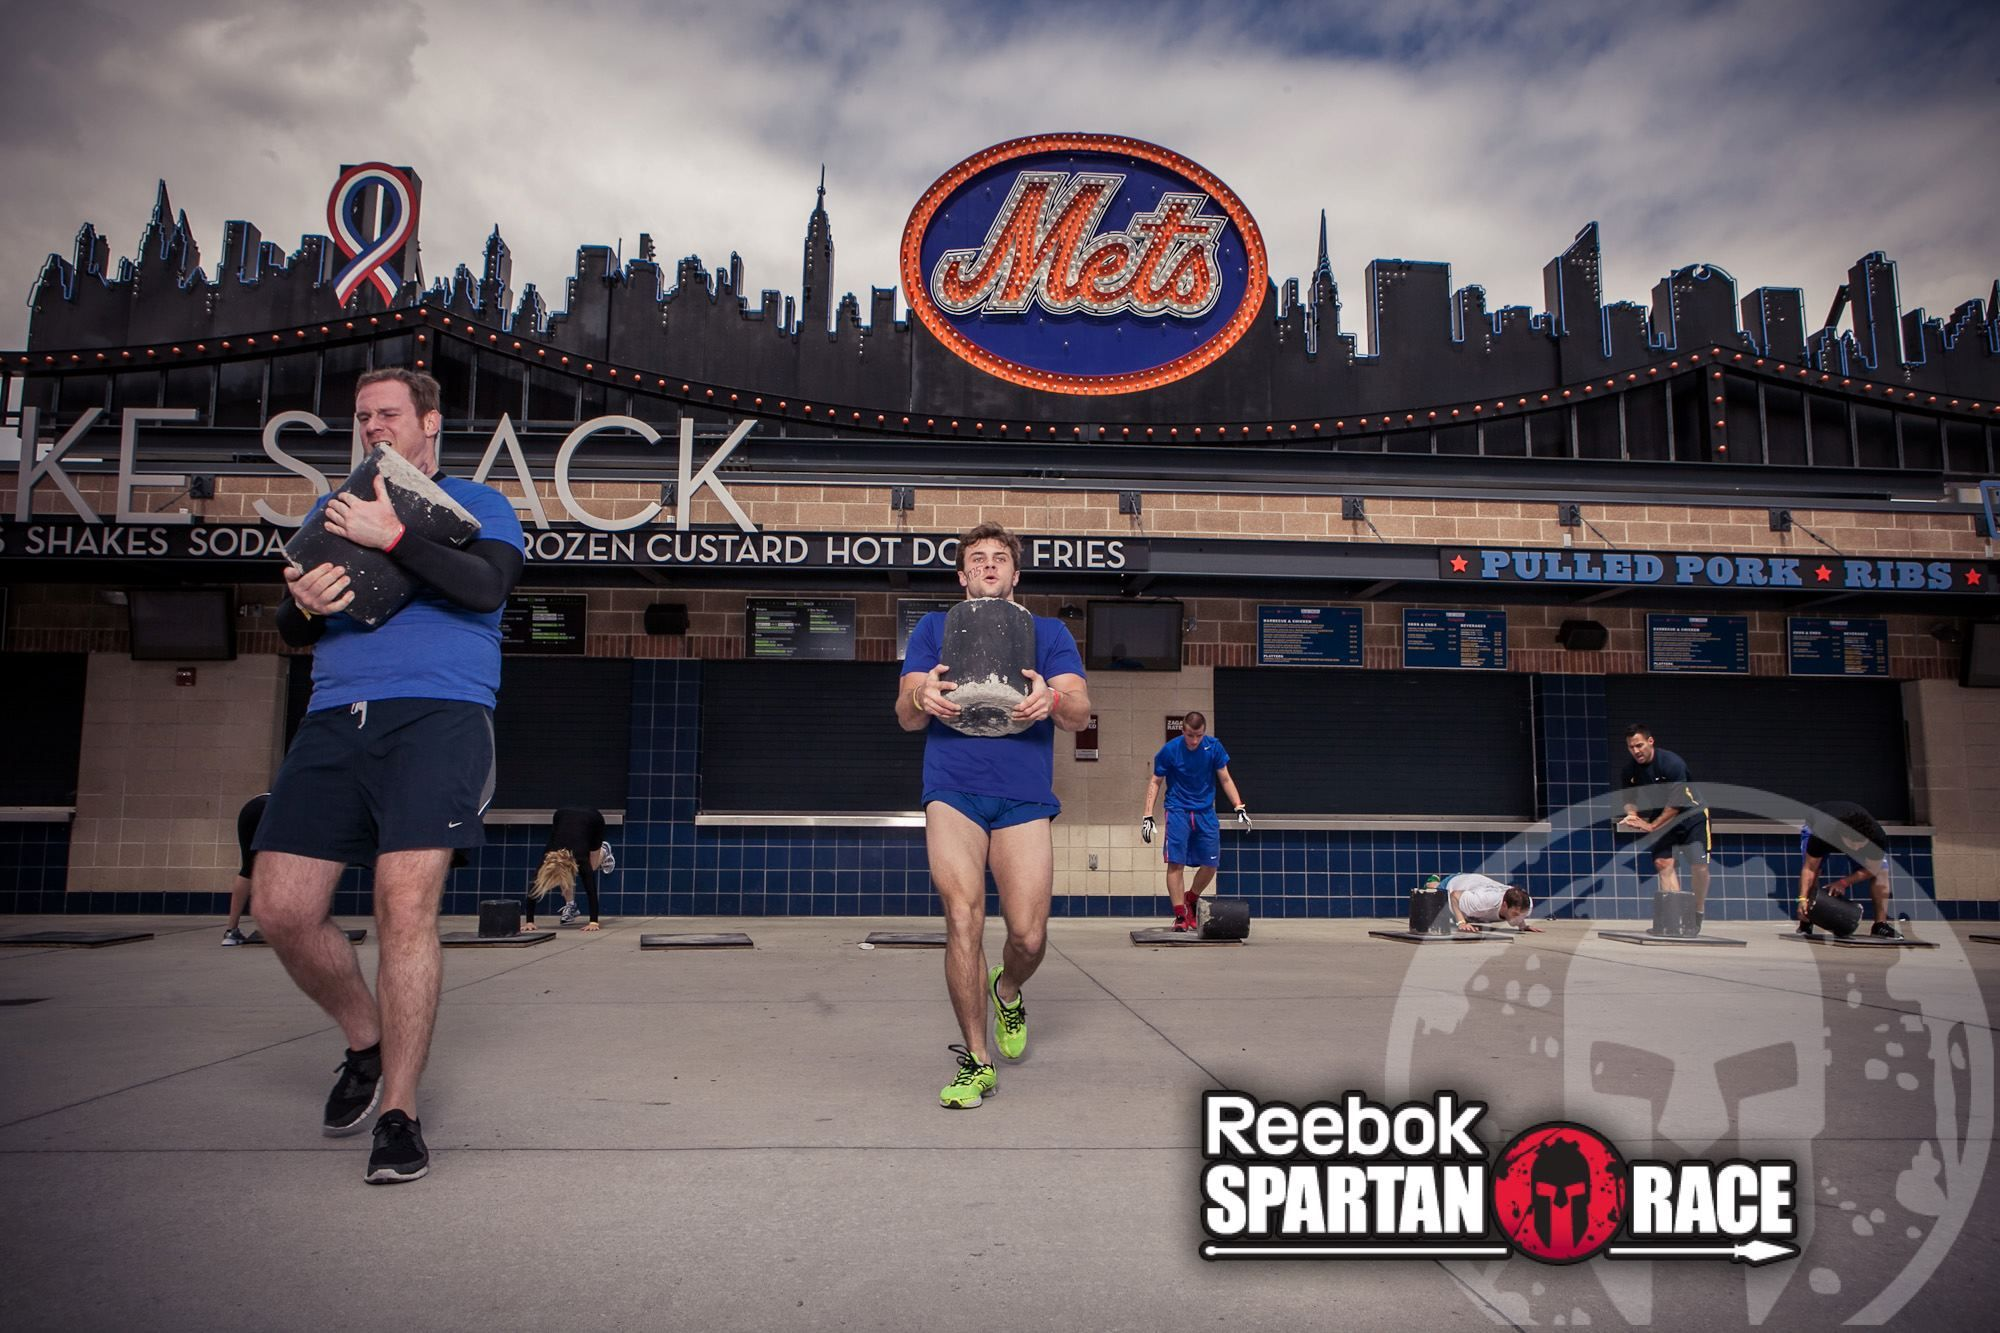 Conquering Citi Field for the #SpartanSprint 2013!! #METS #MLB #SpartanRace